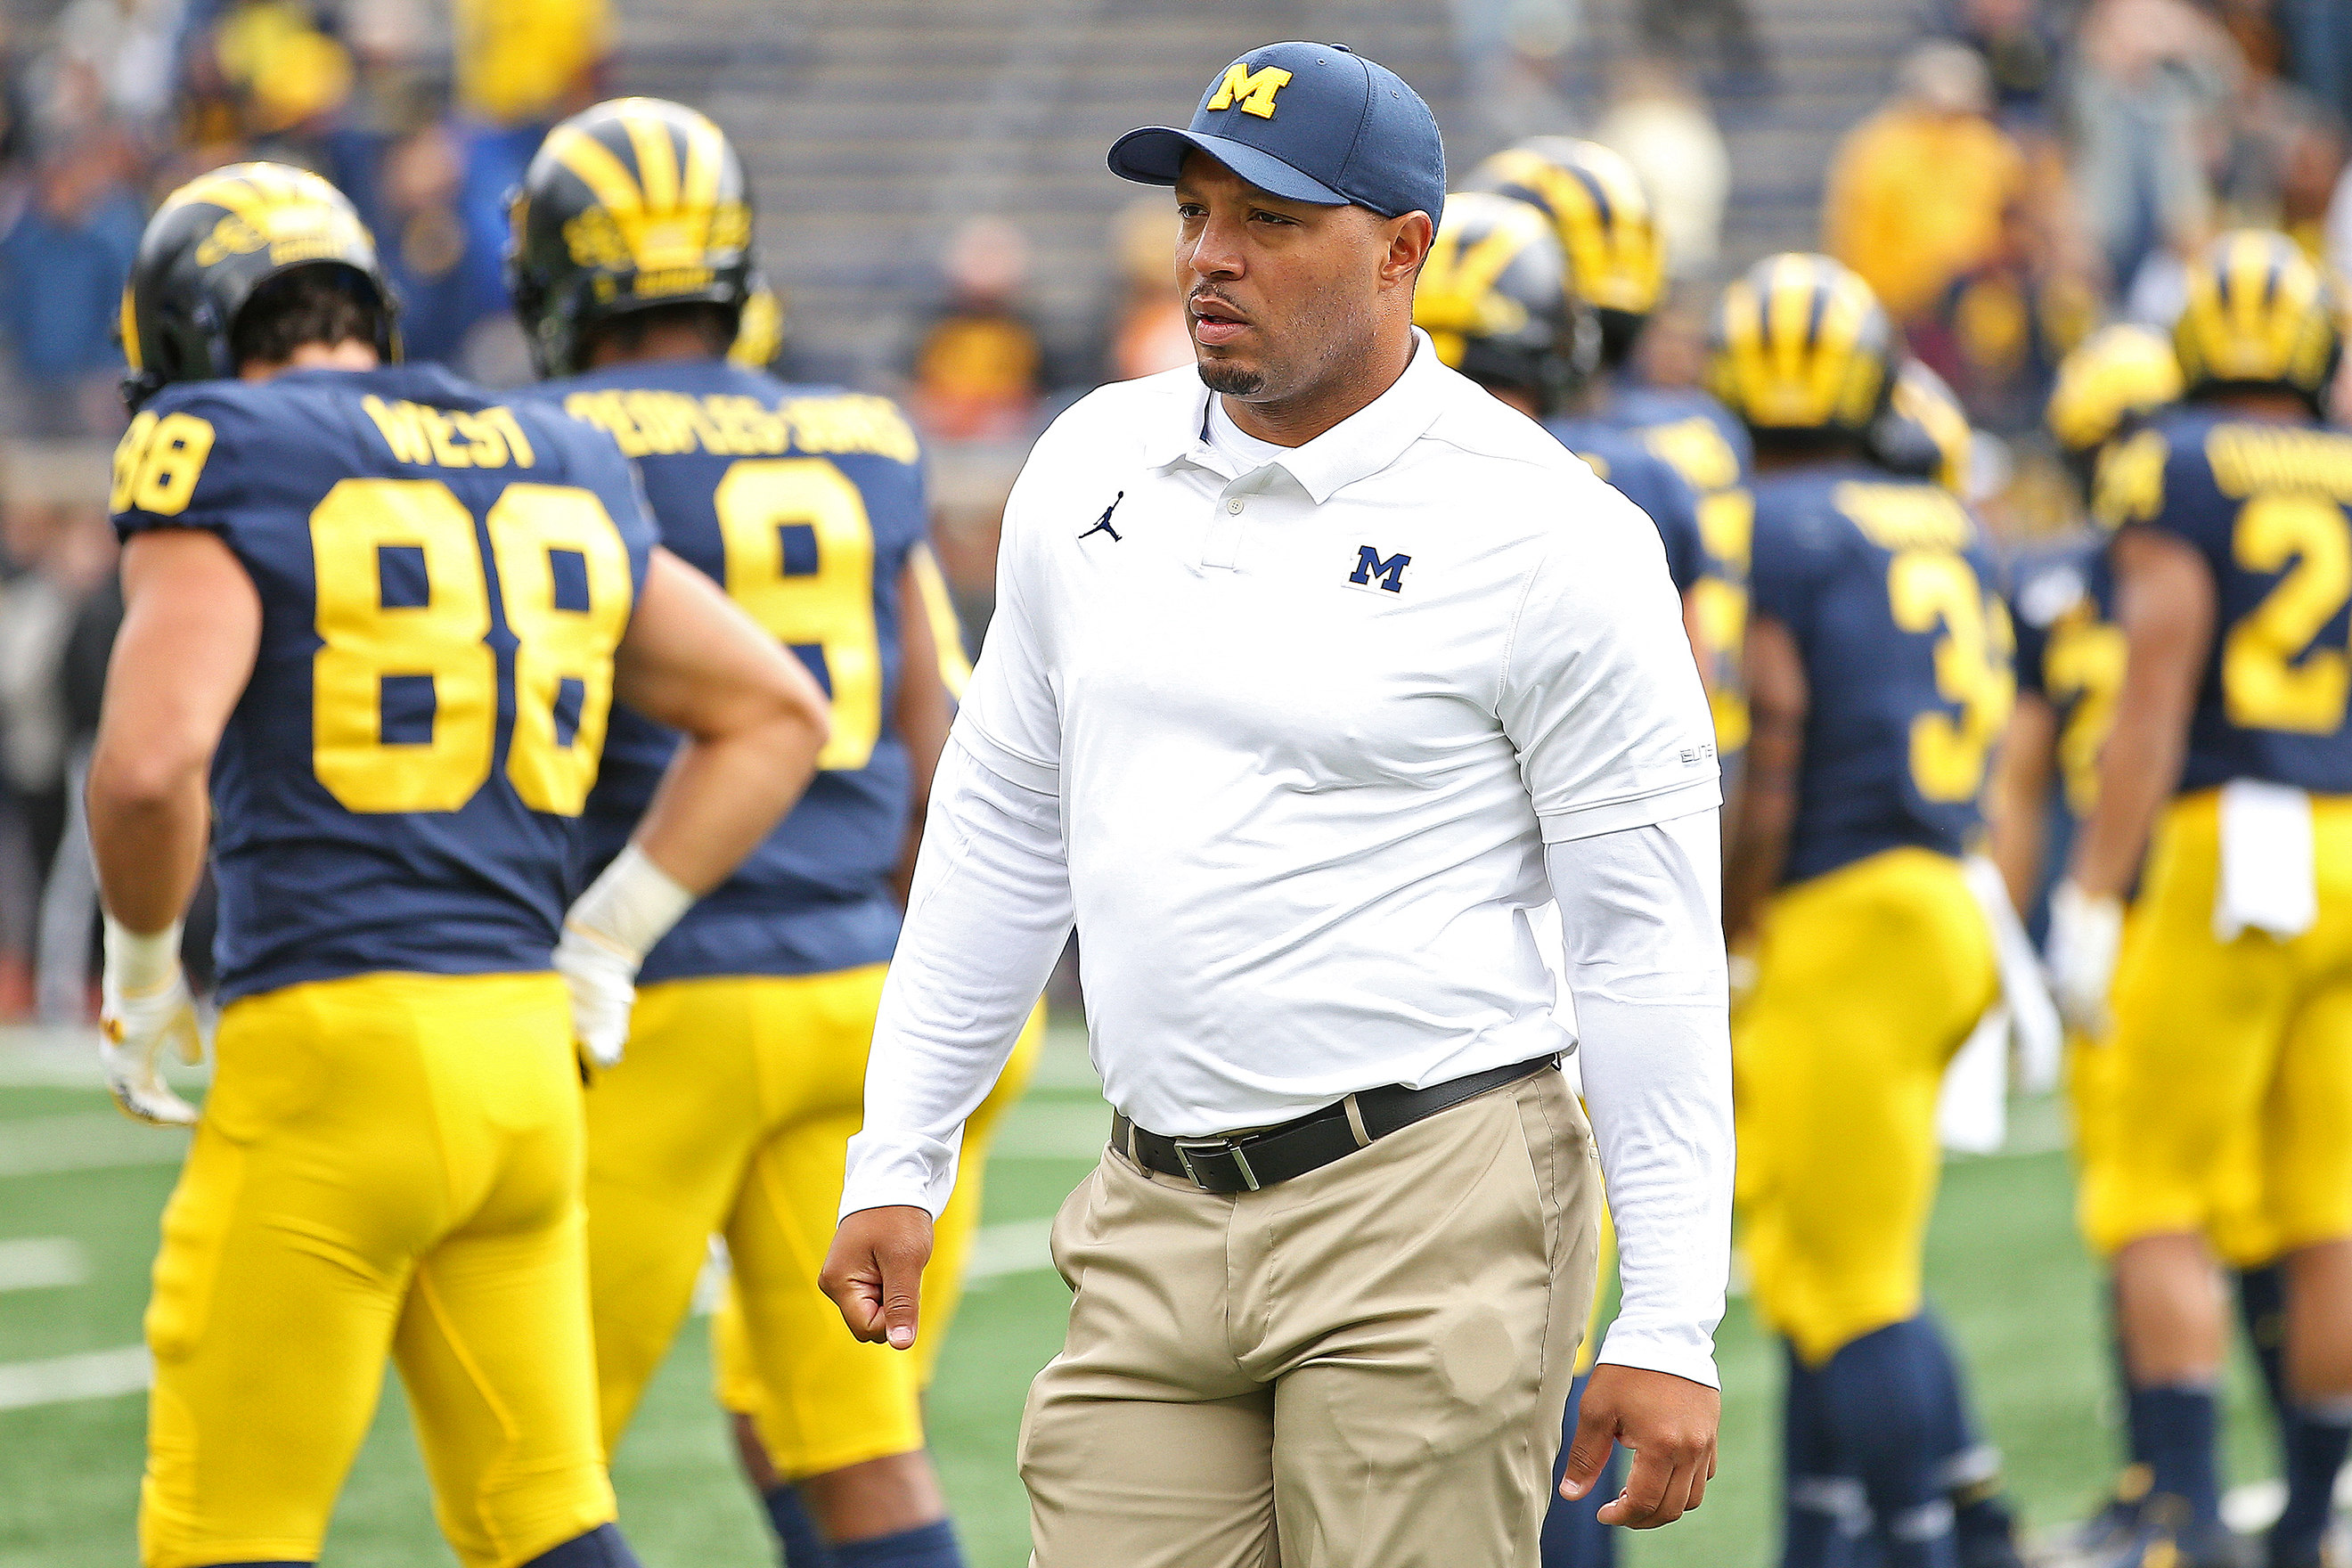 Penn State and Michigan prep for a Whiteout: A Penn State coach returns, Noah Cain goes for the hat trick, more key storylines